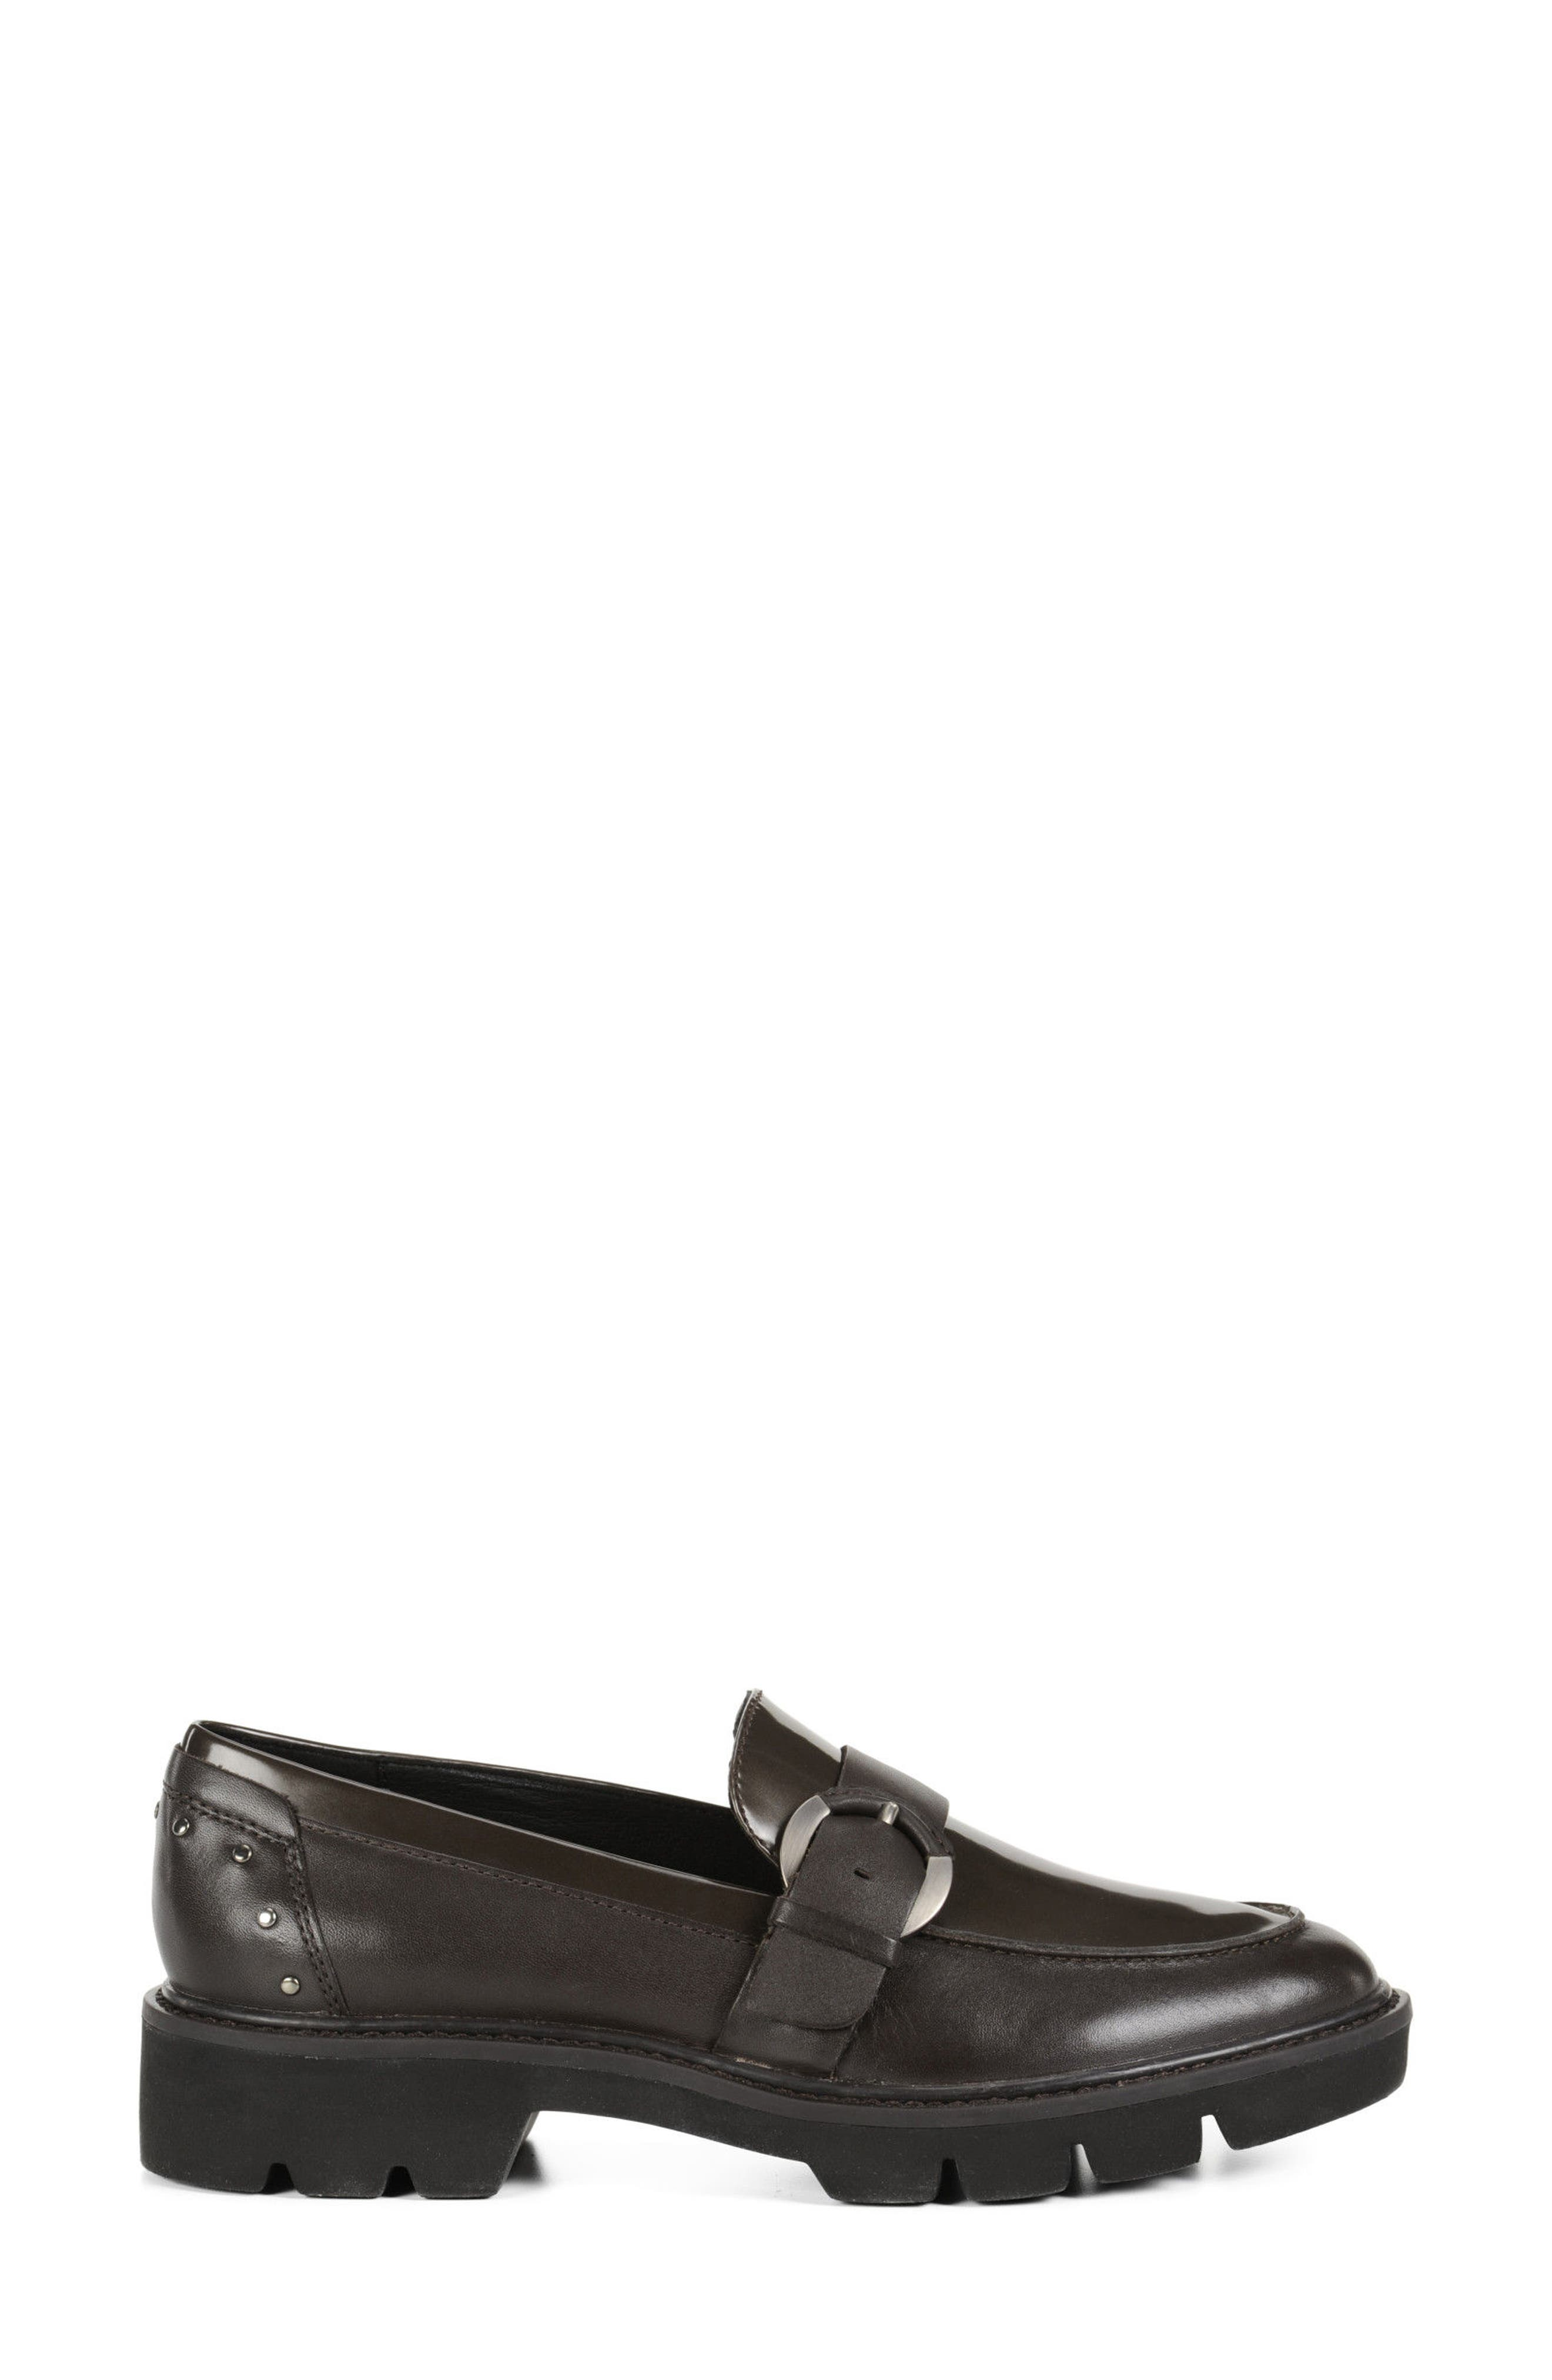 Alternate Image 3  - Geox Quinlynn Loafer (Women)